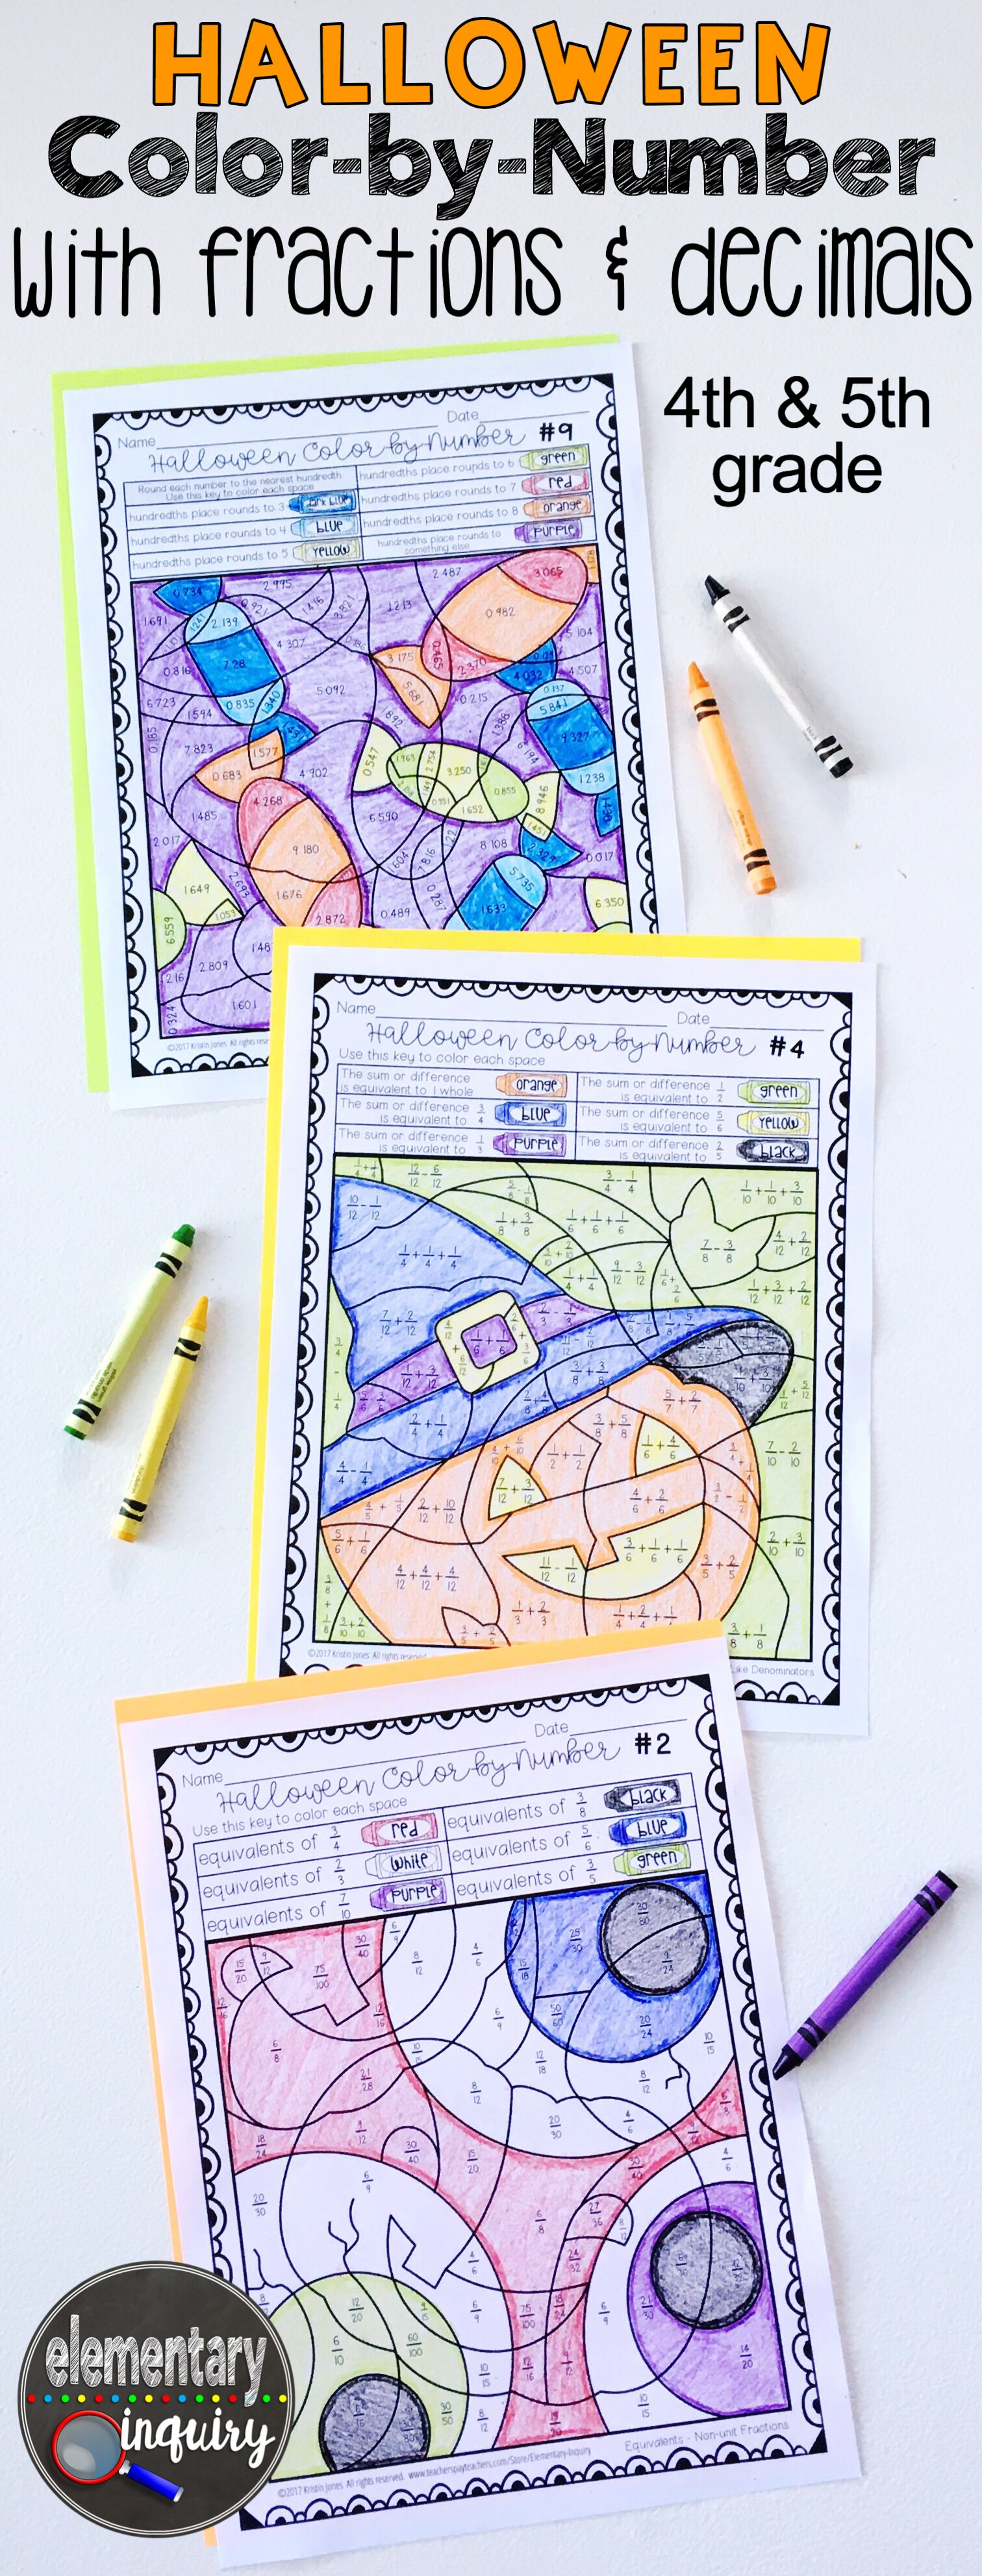 Halloween Fractions And Decimals Color By Number Math